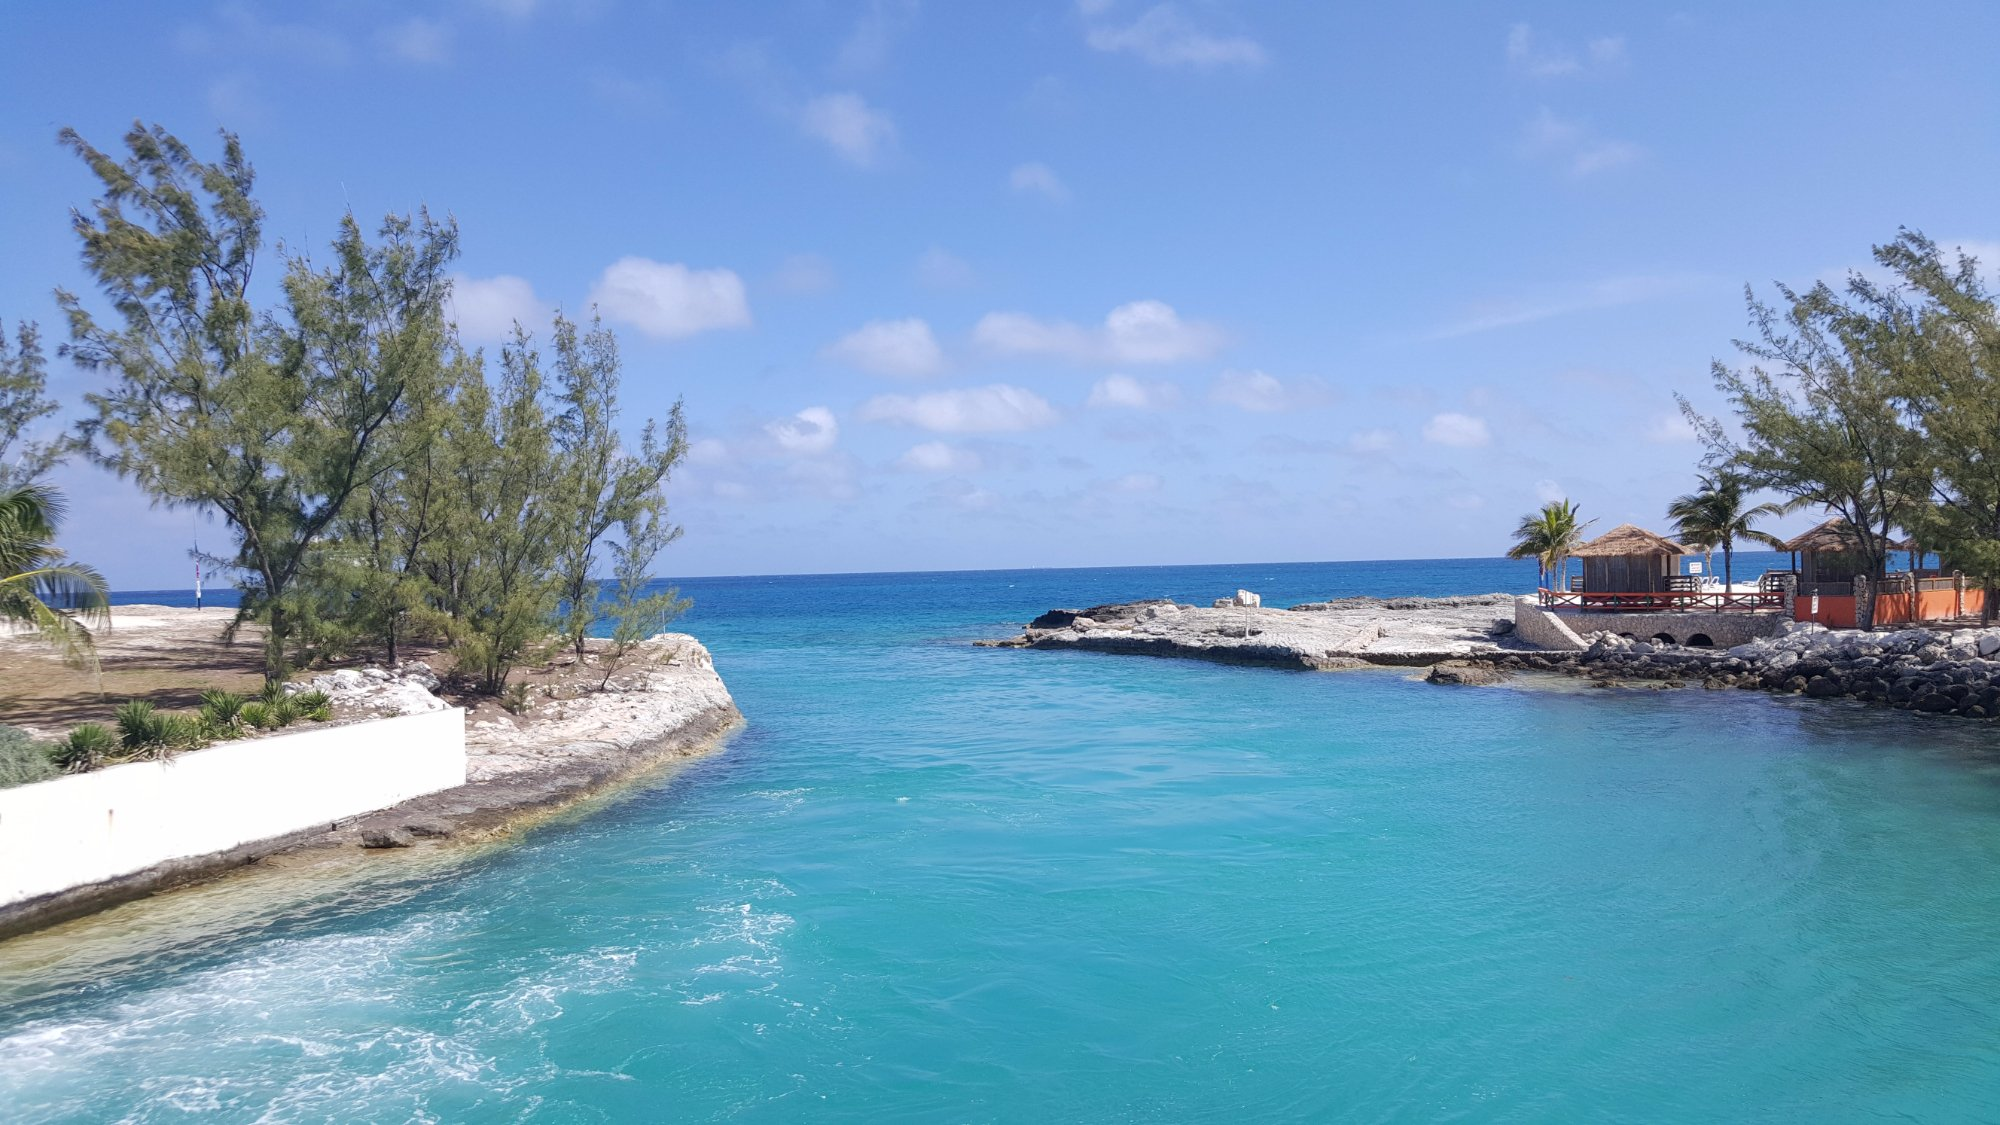 This Picture is taken at docking station of Cococay Island in Great Bahamas.